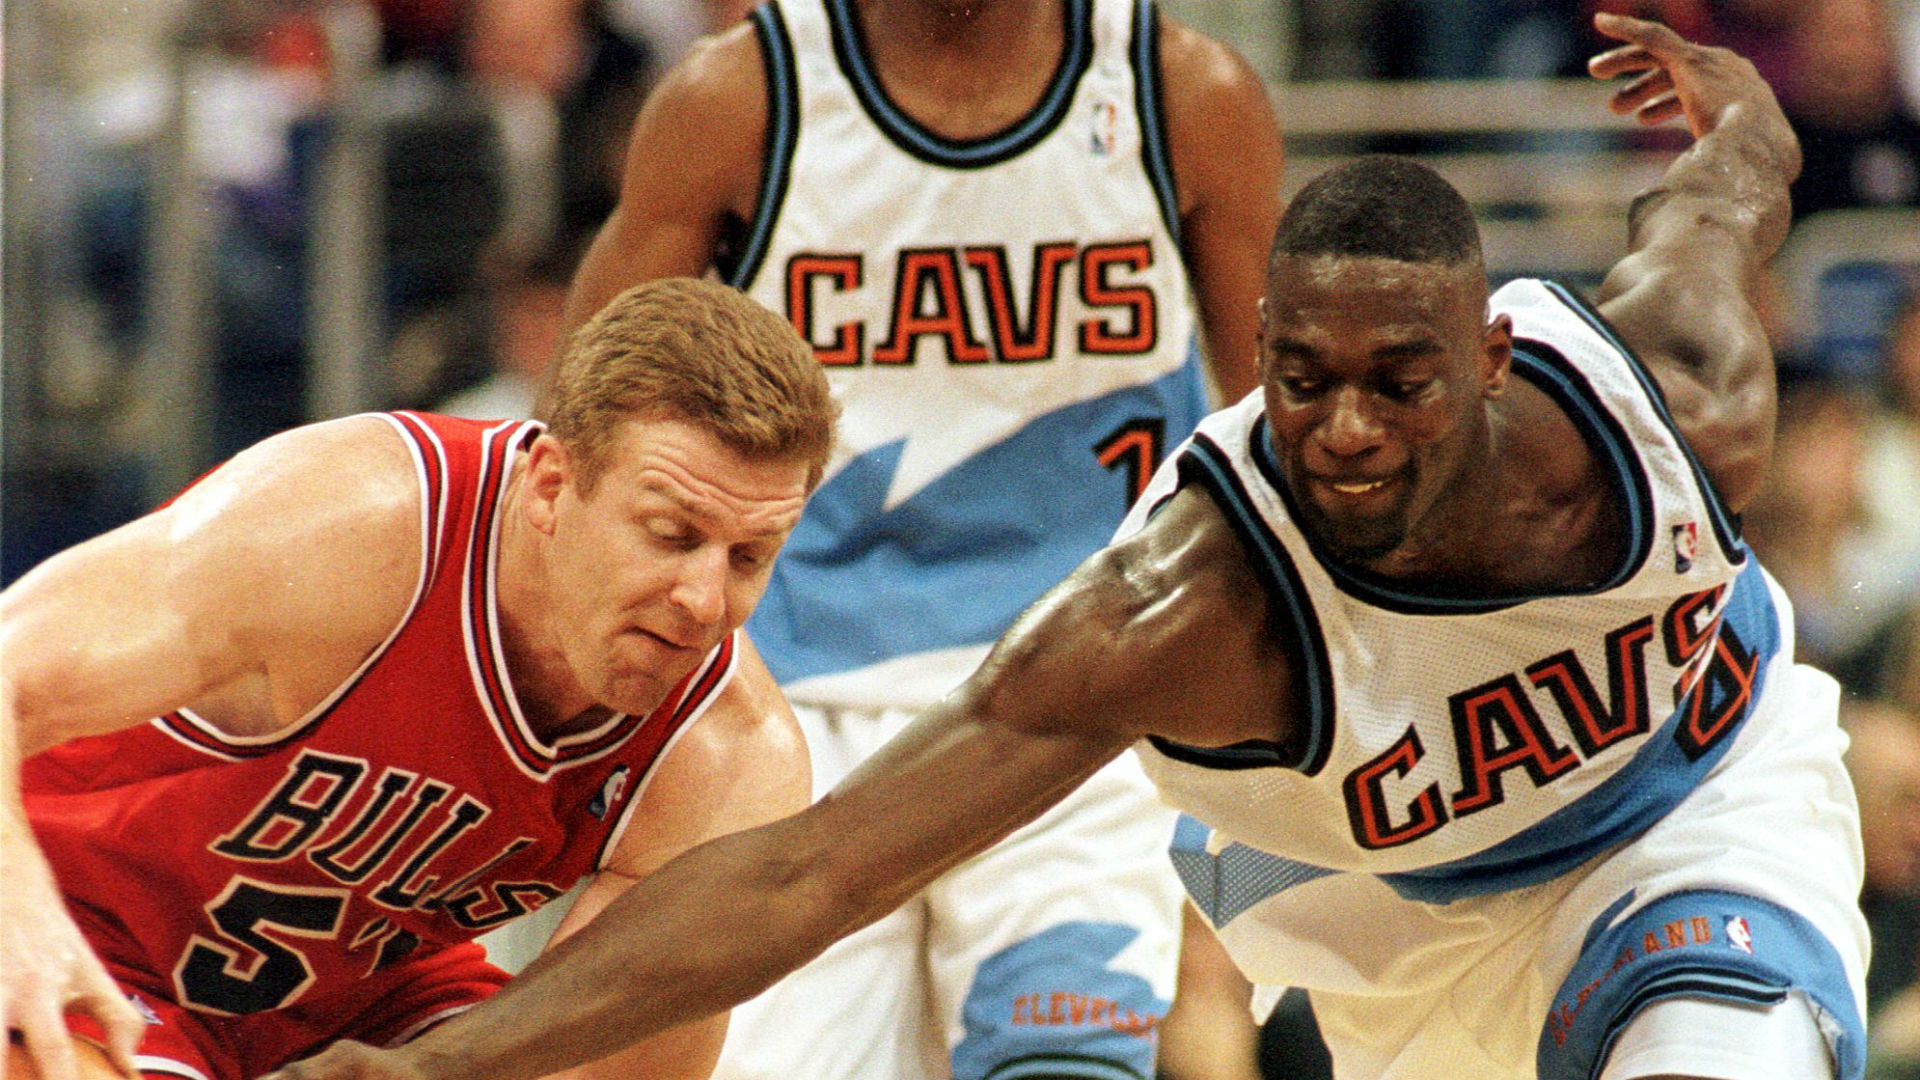 Cleveland Cavaliers uniform history: Wine and gold, black and blue | Sporting News